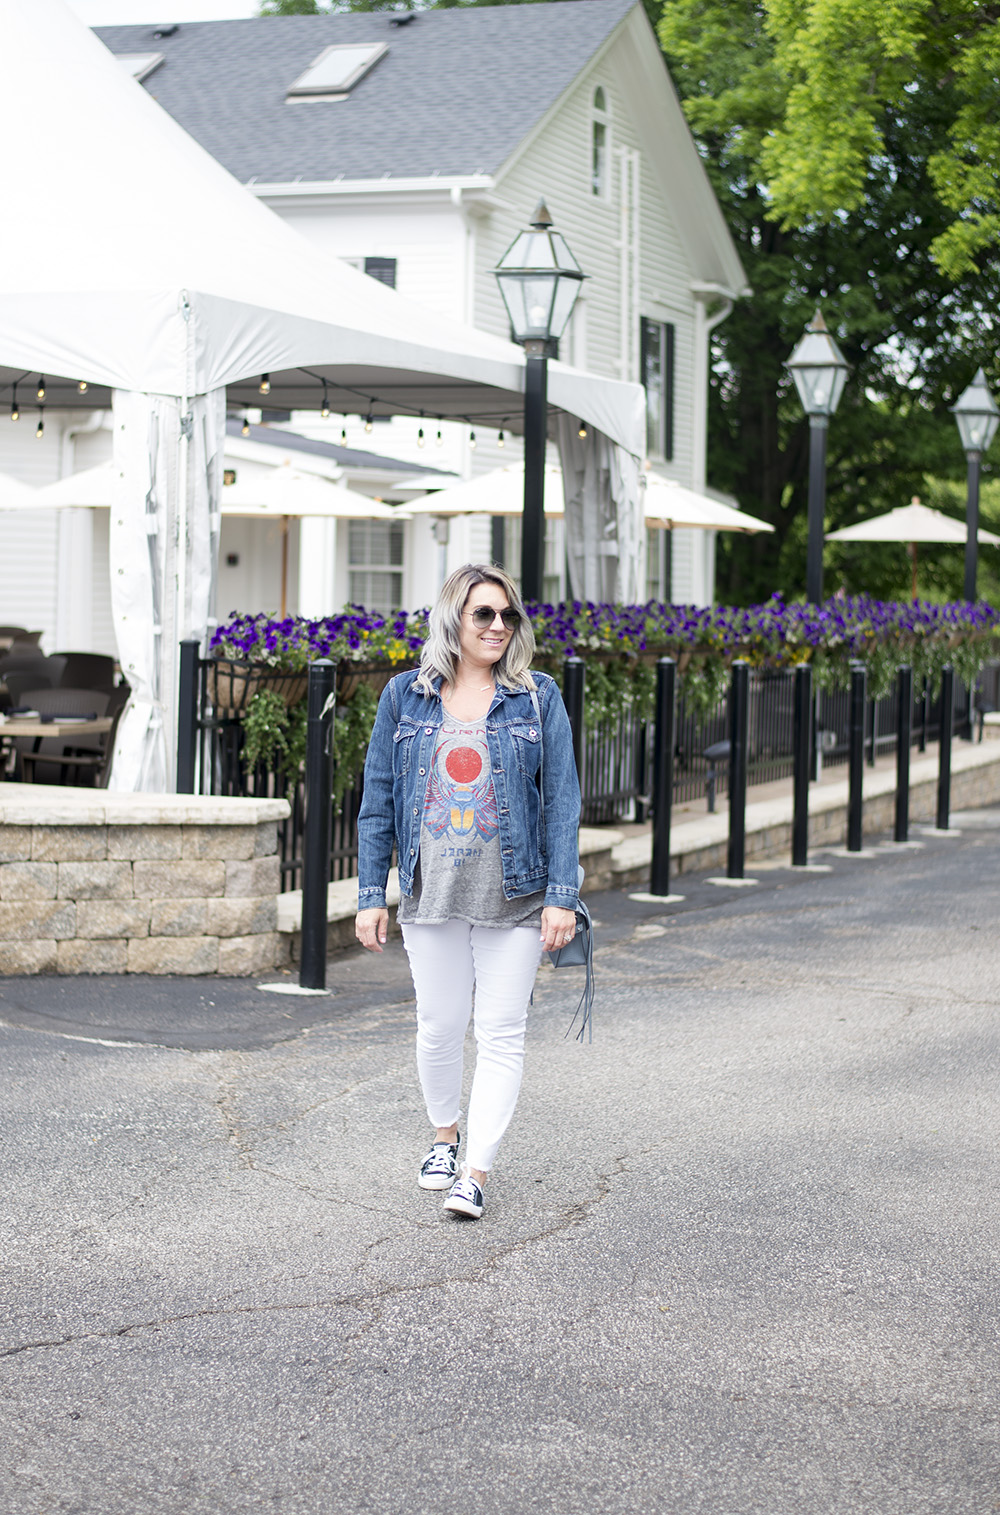 Cleveland blogger The Samantha Show shares some casual maternity outfit inspiration.